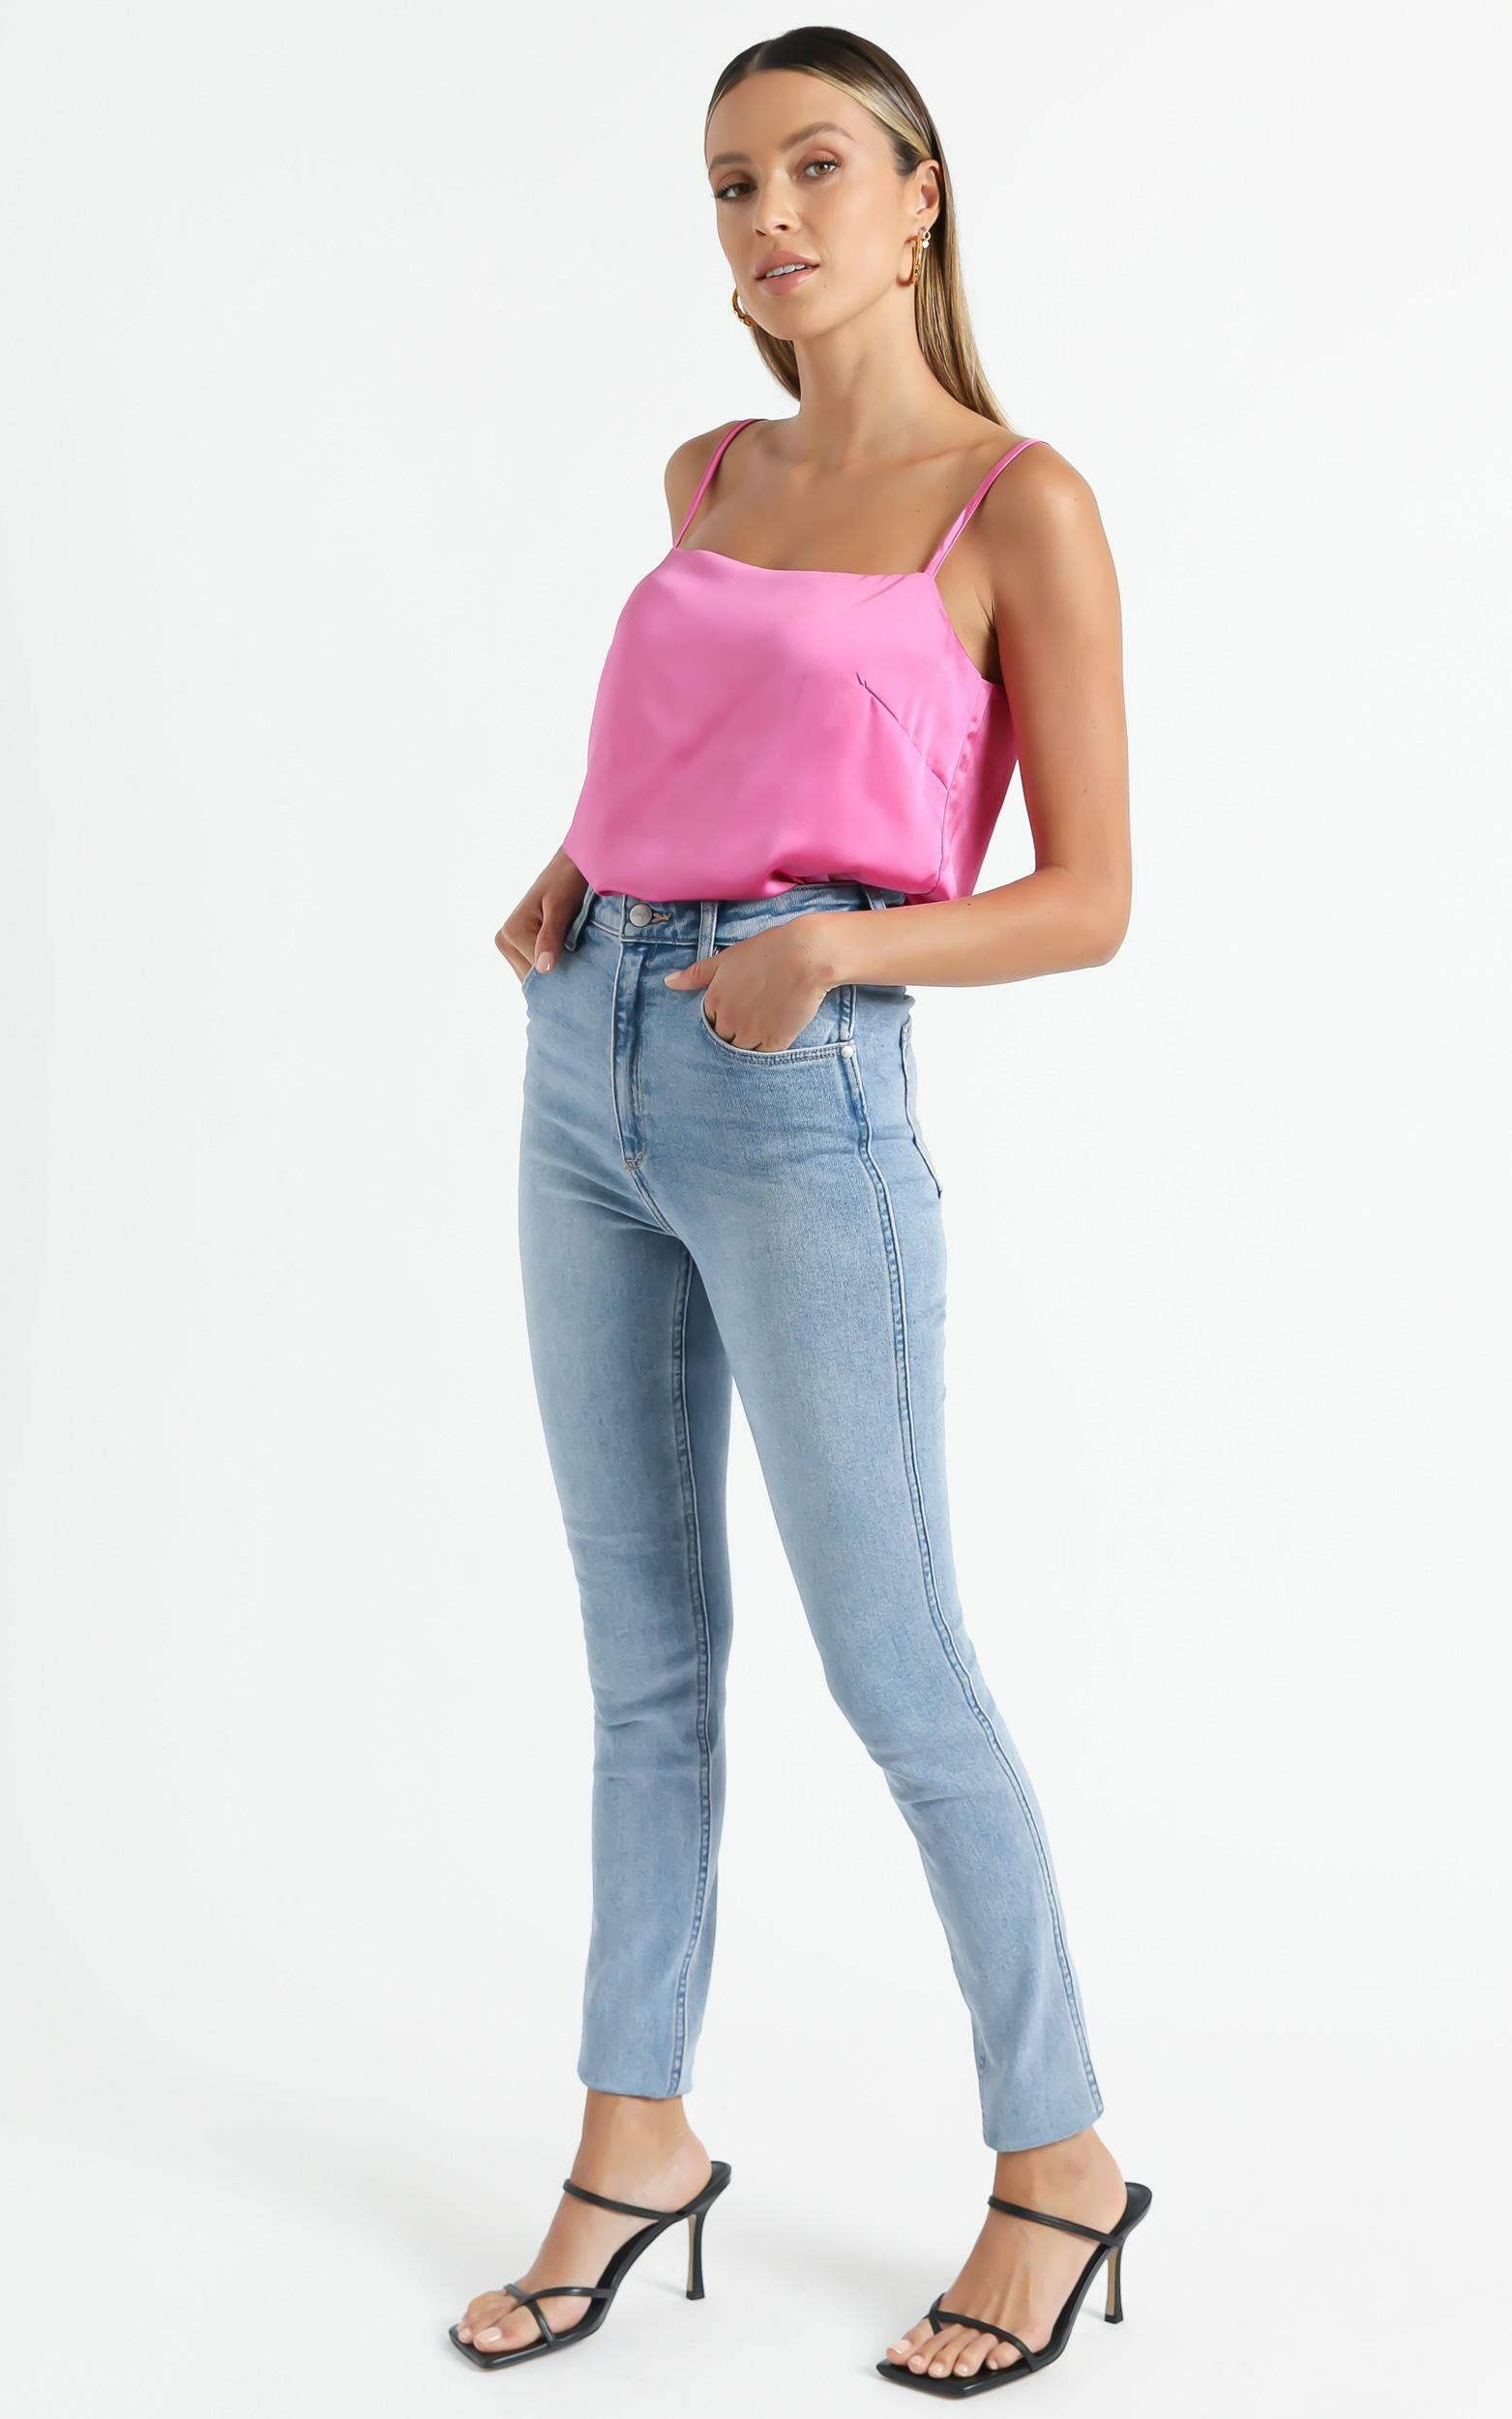 Sooner Or Later Top in Pink - 6 (XS), Pink, hi-res image number null